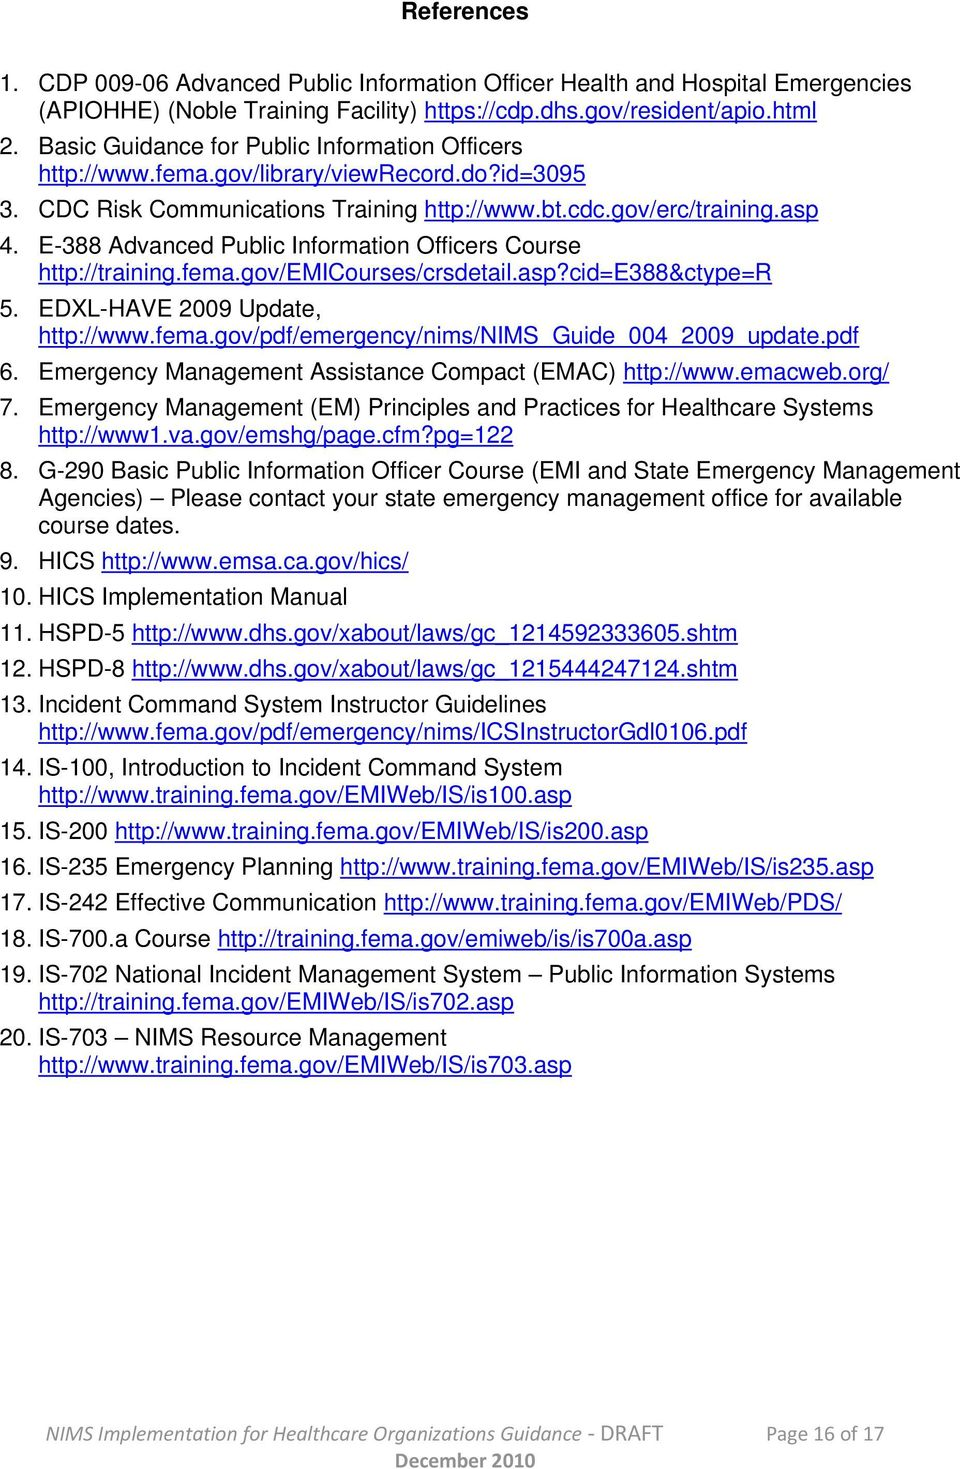 E-388 Advanced Public Information Officers Course http://training.fema.gov/emicourses/crsdetail.asp?cid=e388&ctype=r 5. EDXL-HAVE 2009 Update, http://www.fema.gov/pdf/emergency/nims/nims_guide_004_2009_update.